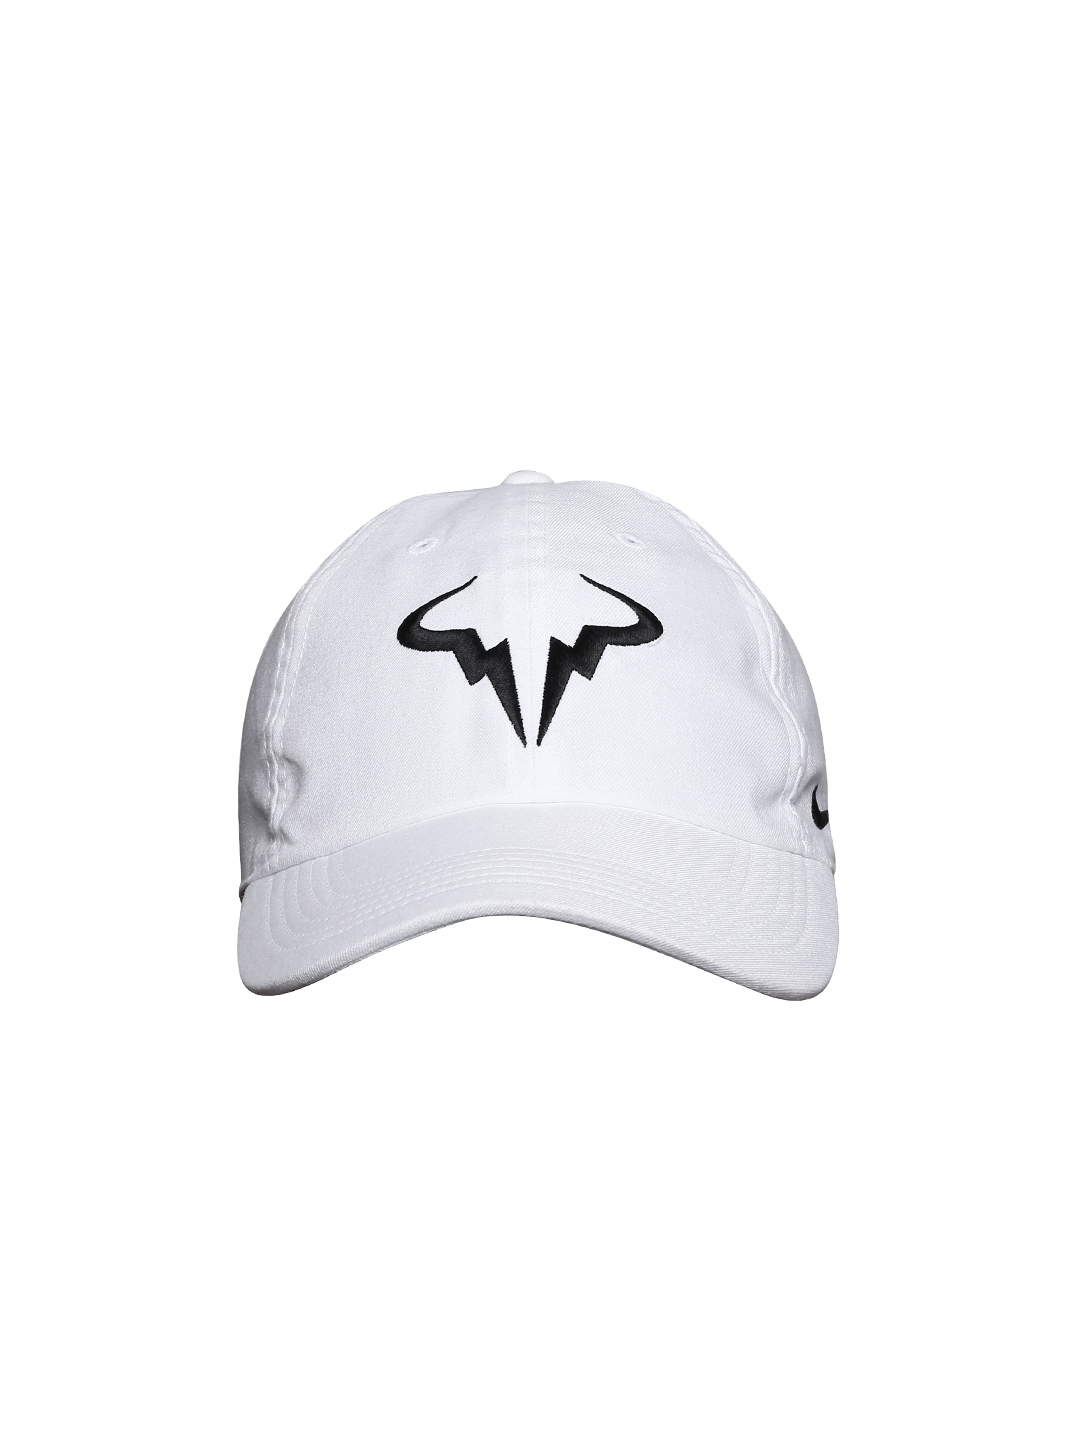 5749d29f887cc Buy Nike Unisex White AEROBILL H86 Rafa Tennis Cap - Caps for Unisex ...